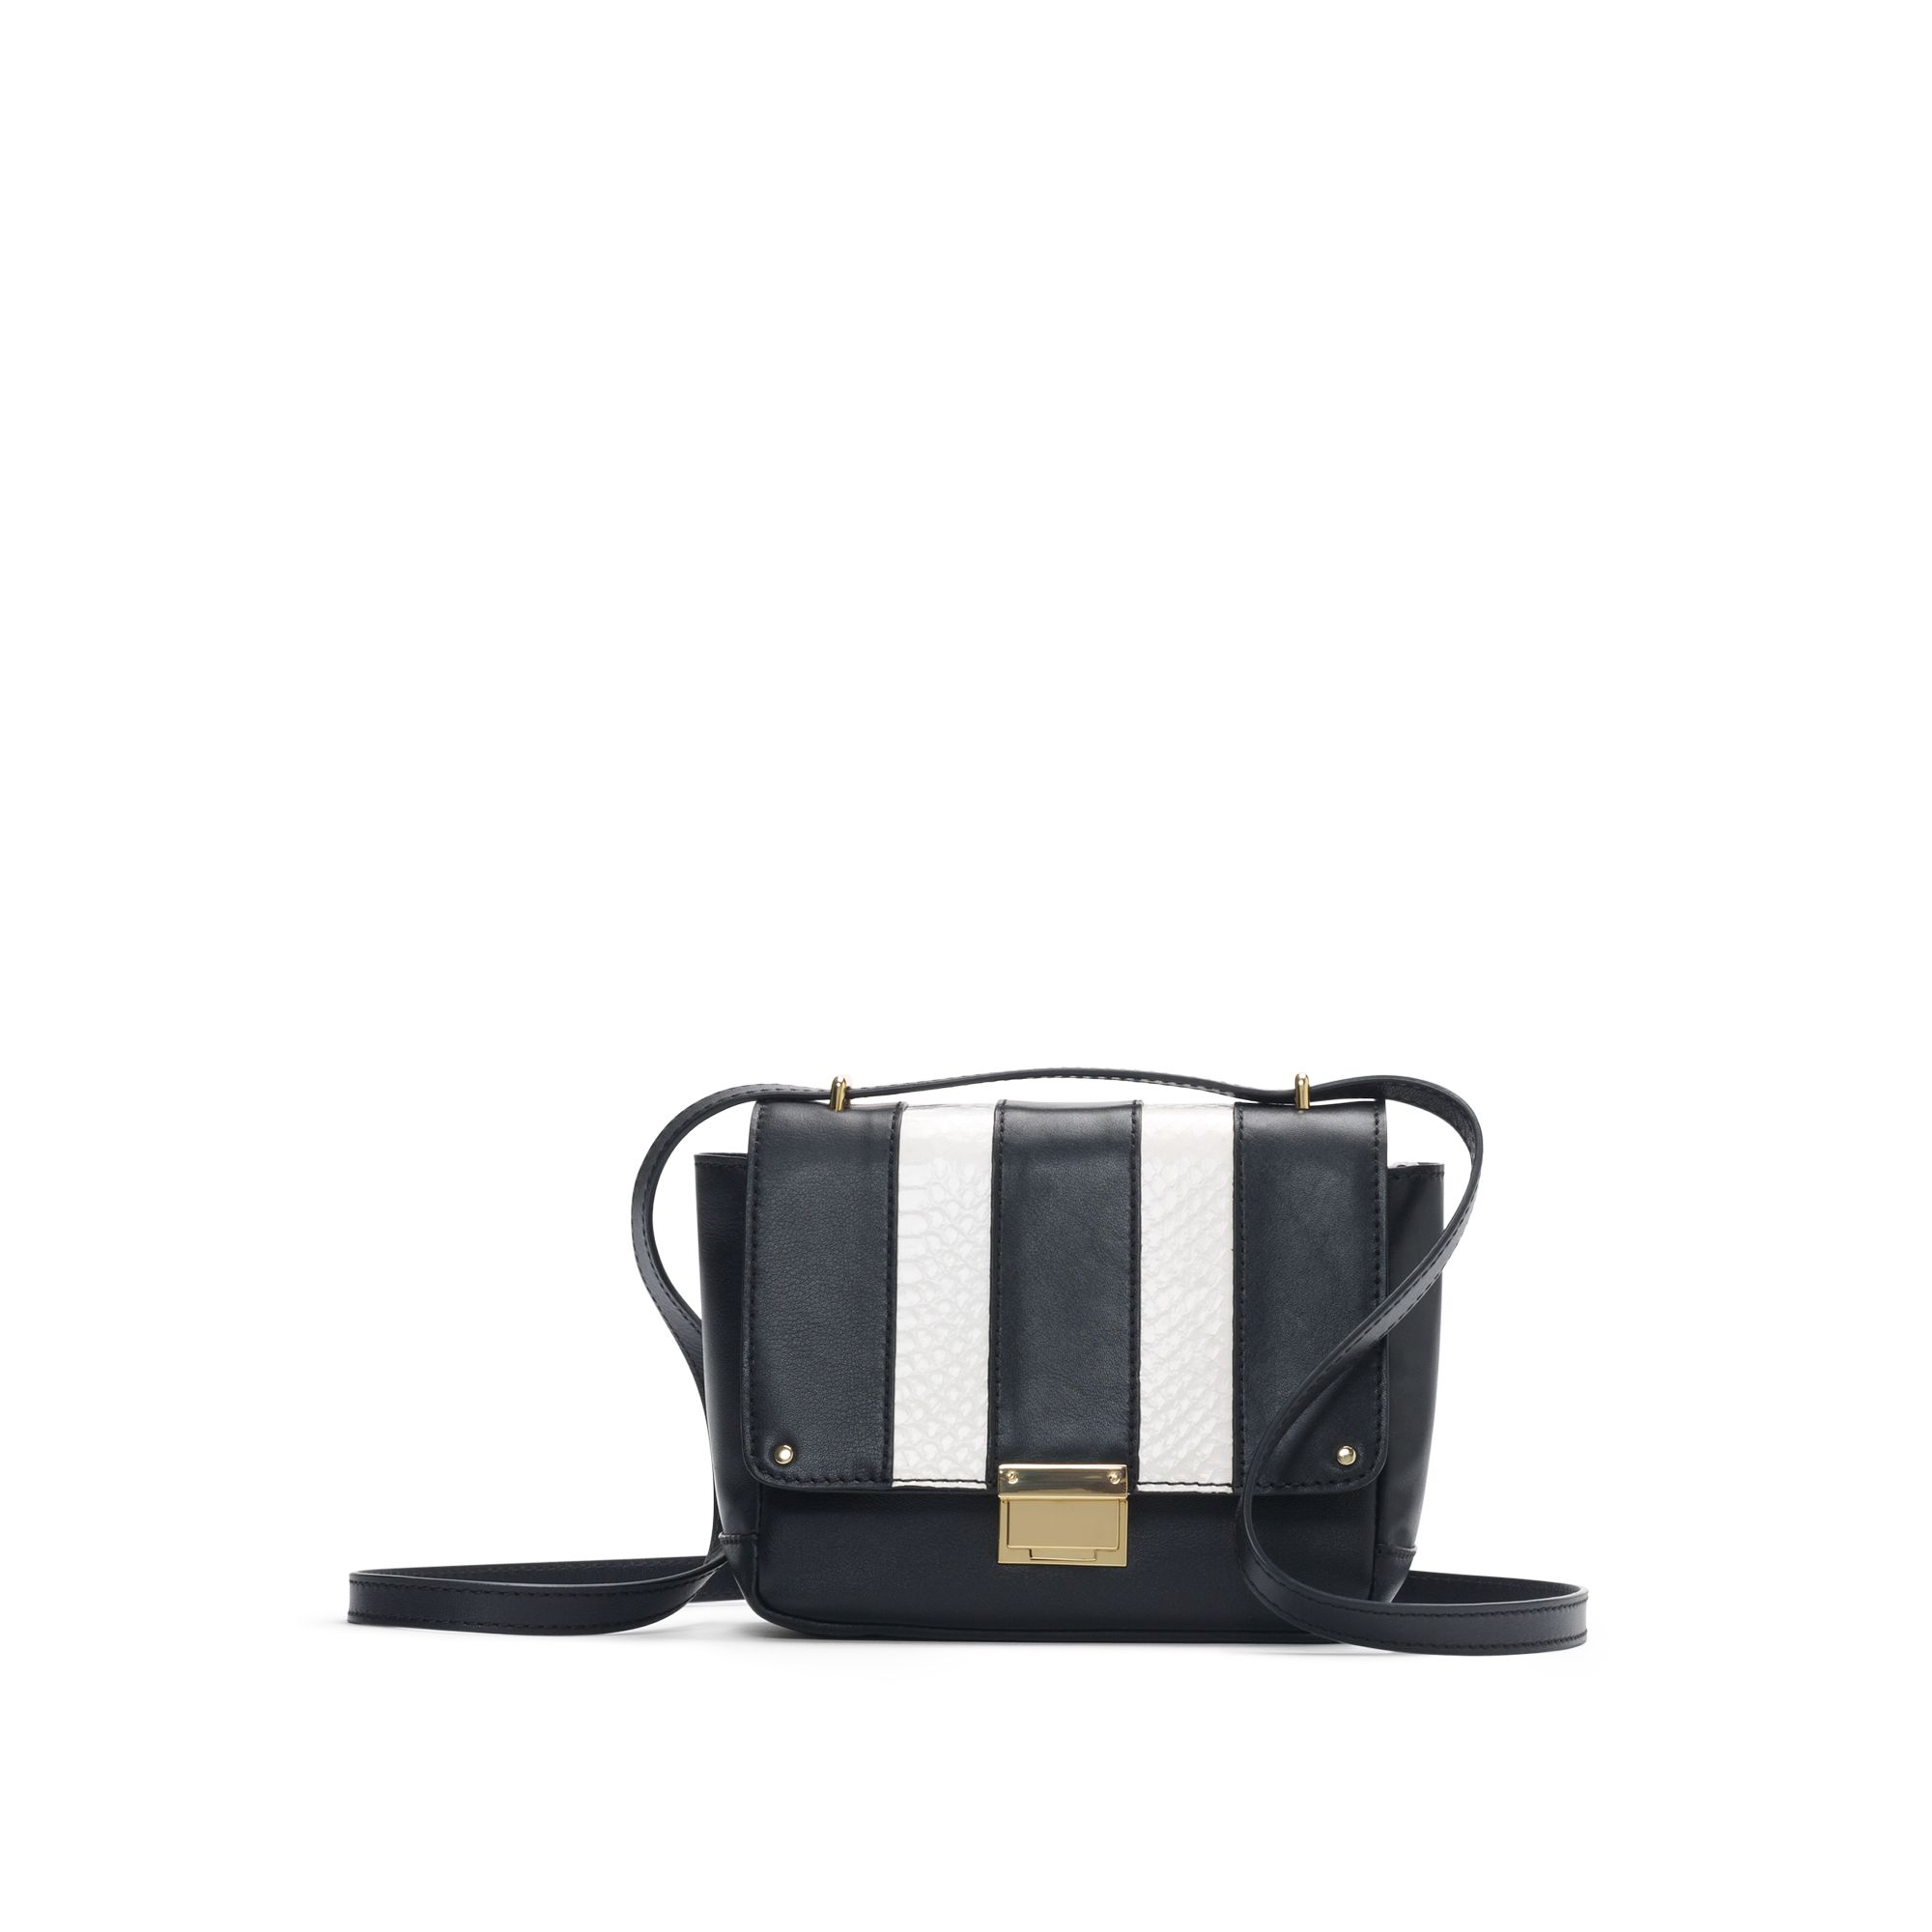 Cheap Price Buy Discount CLUB MONACO Leather Crossbody Bag Sale Best Outlet Cheap Quality Clearance Deals 8aEjcv7k